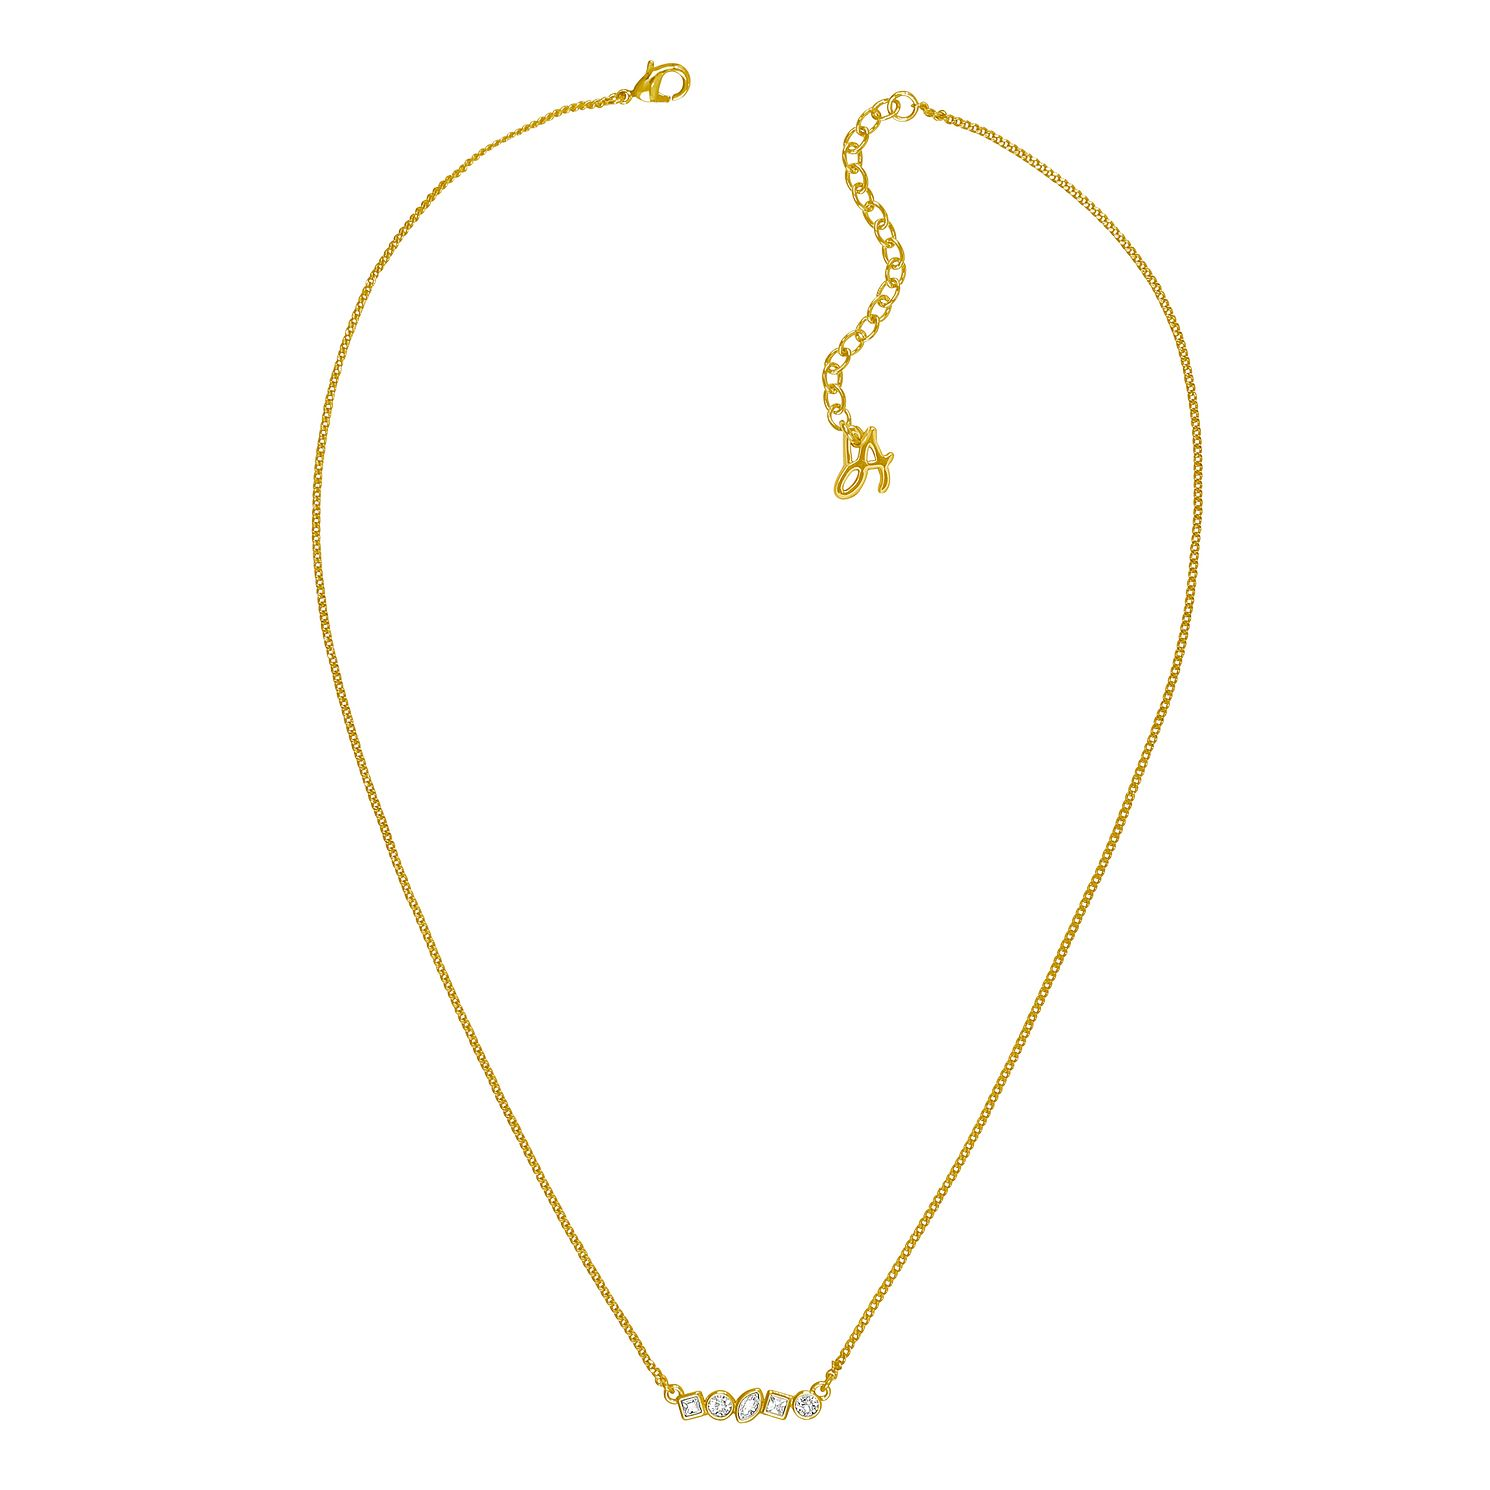 Adore Mini Crystal Gold Plated Bar Swarovski Necklace - Product number 4474821